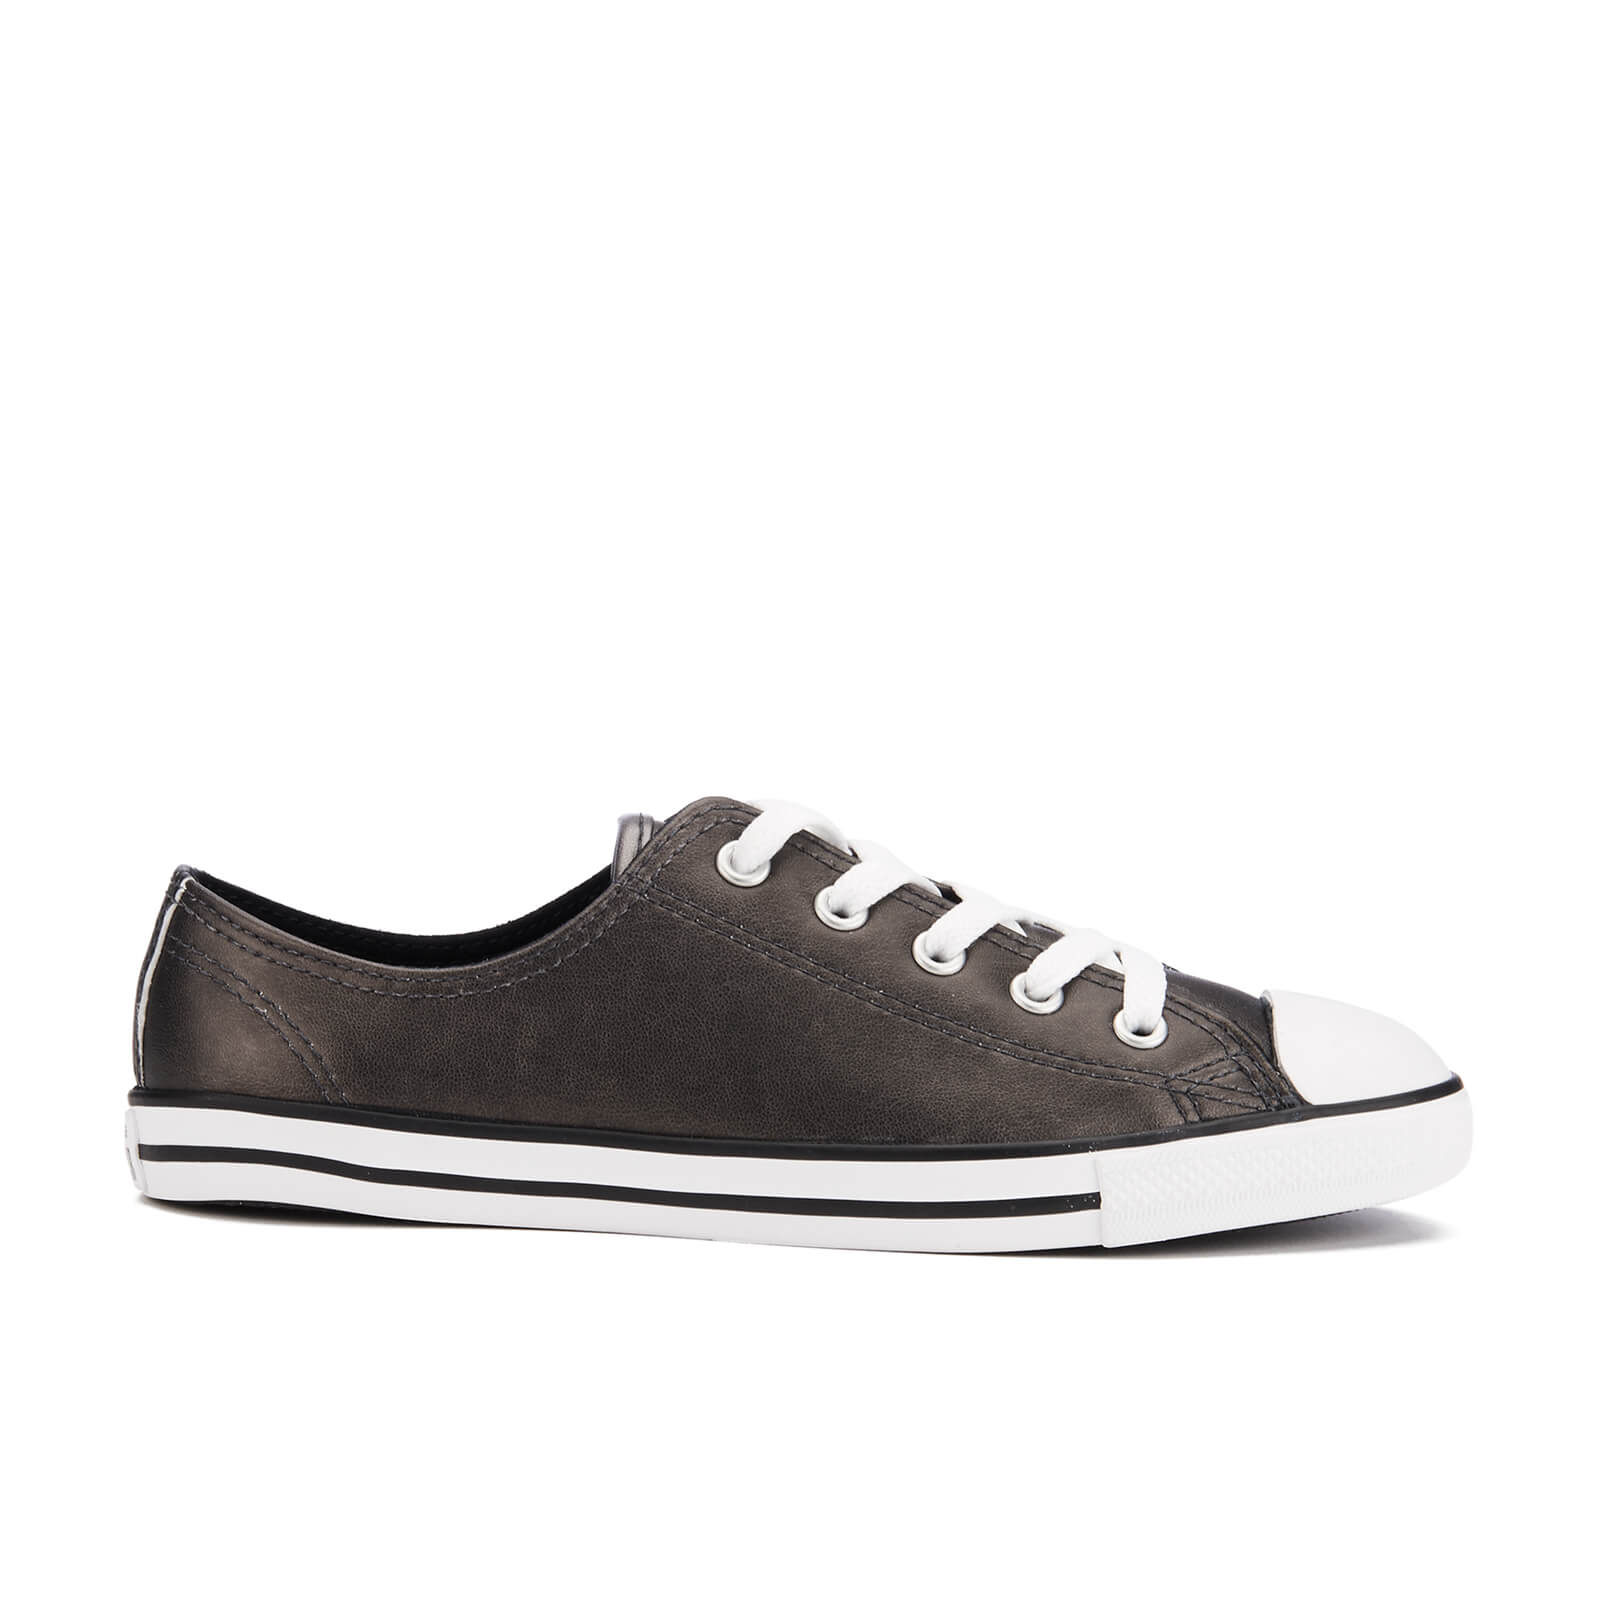 d22e8e6aef6d98 Converse Women s Chuck Taylor All Star Dainty Ox Trainers - Black Black  White - Free UK Delivery over £50